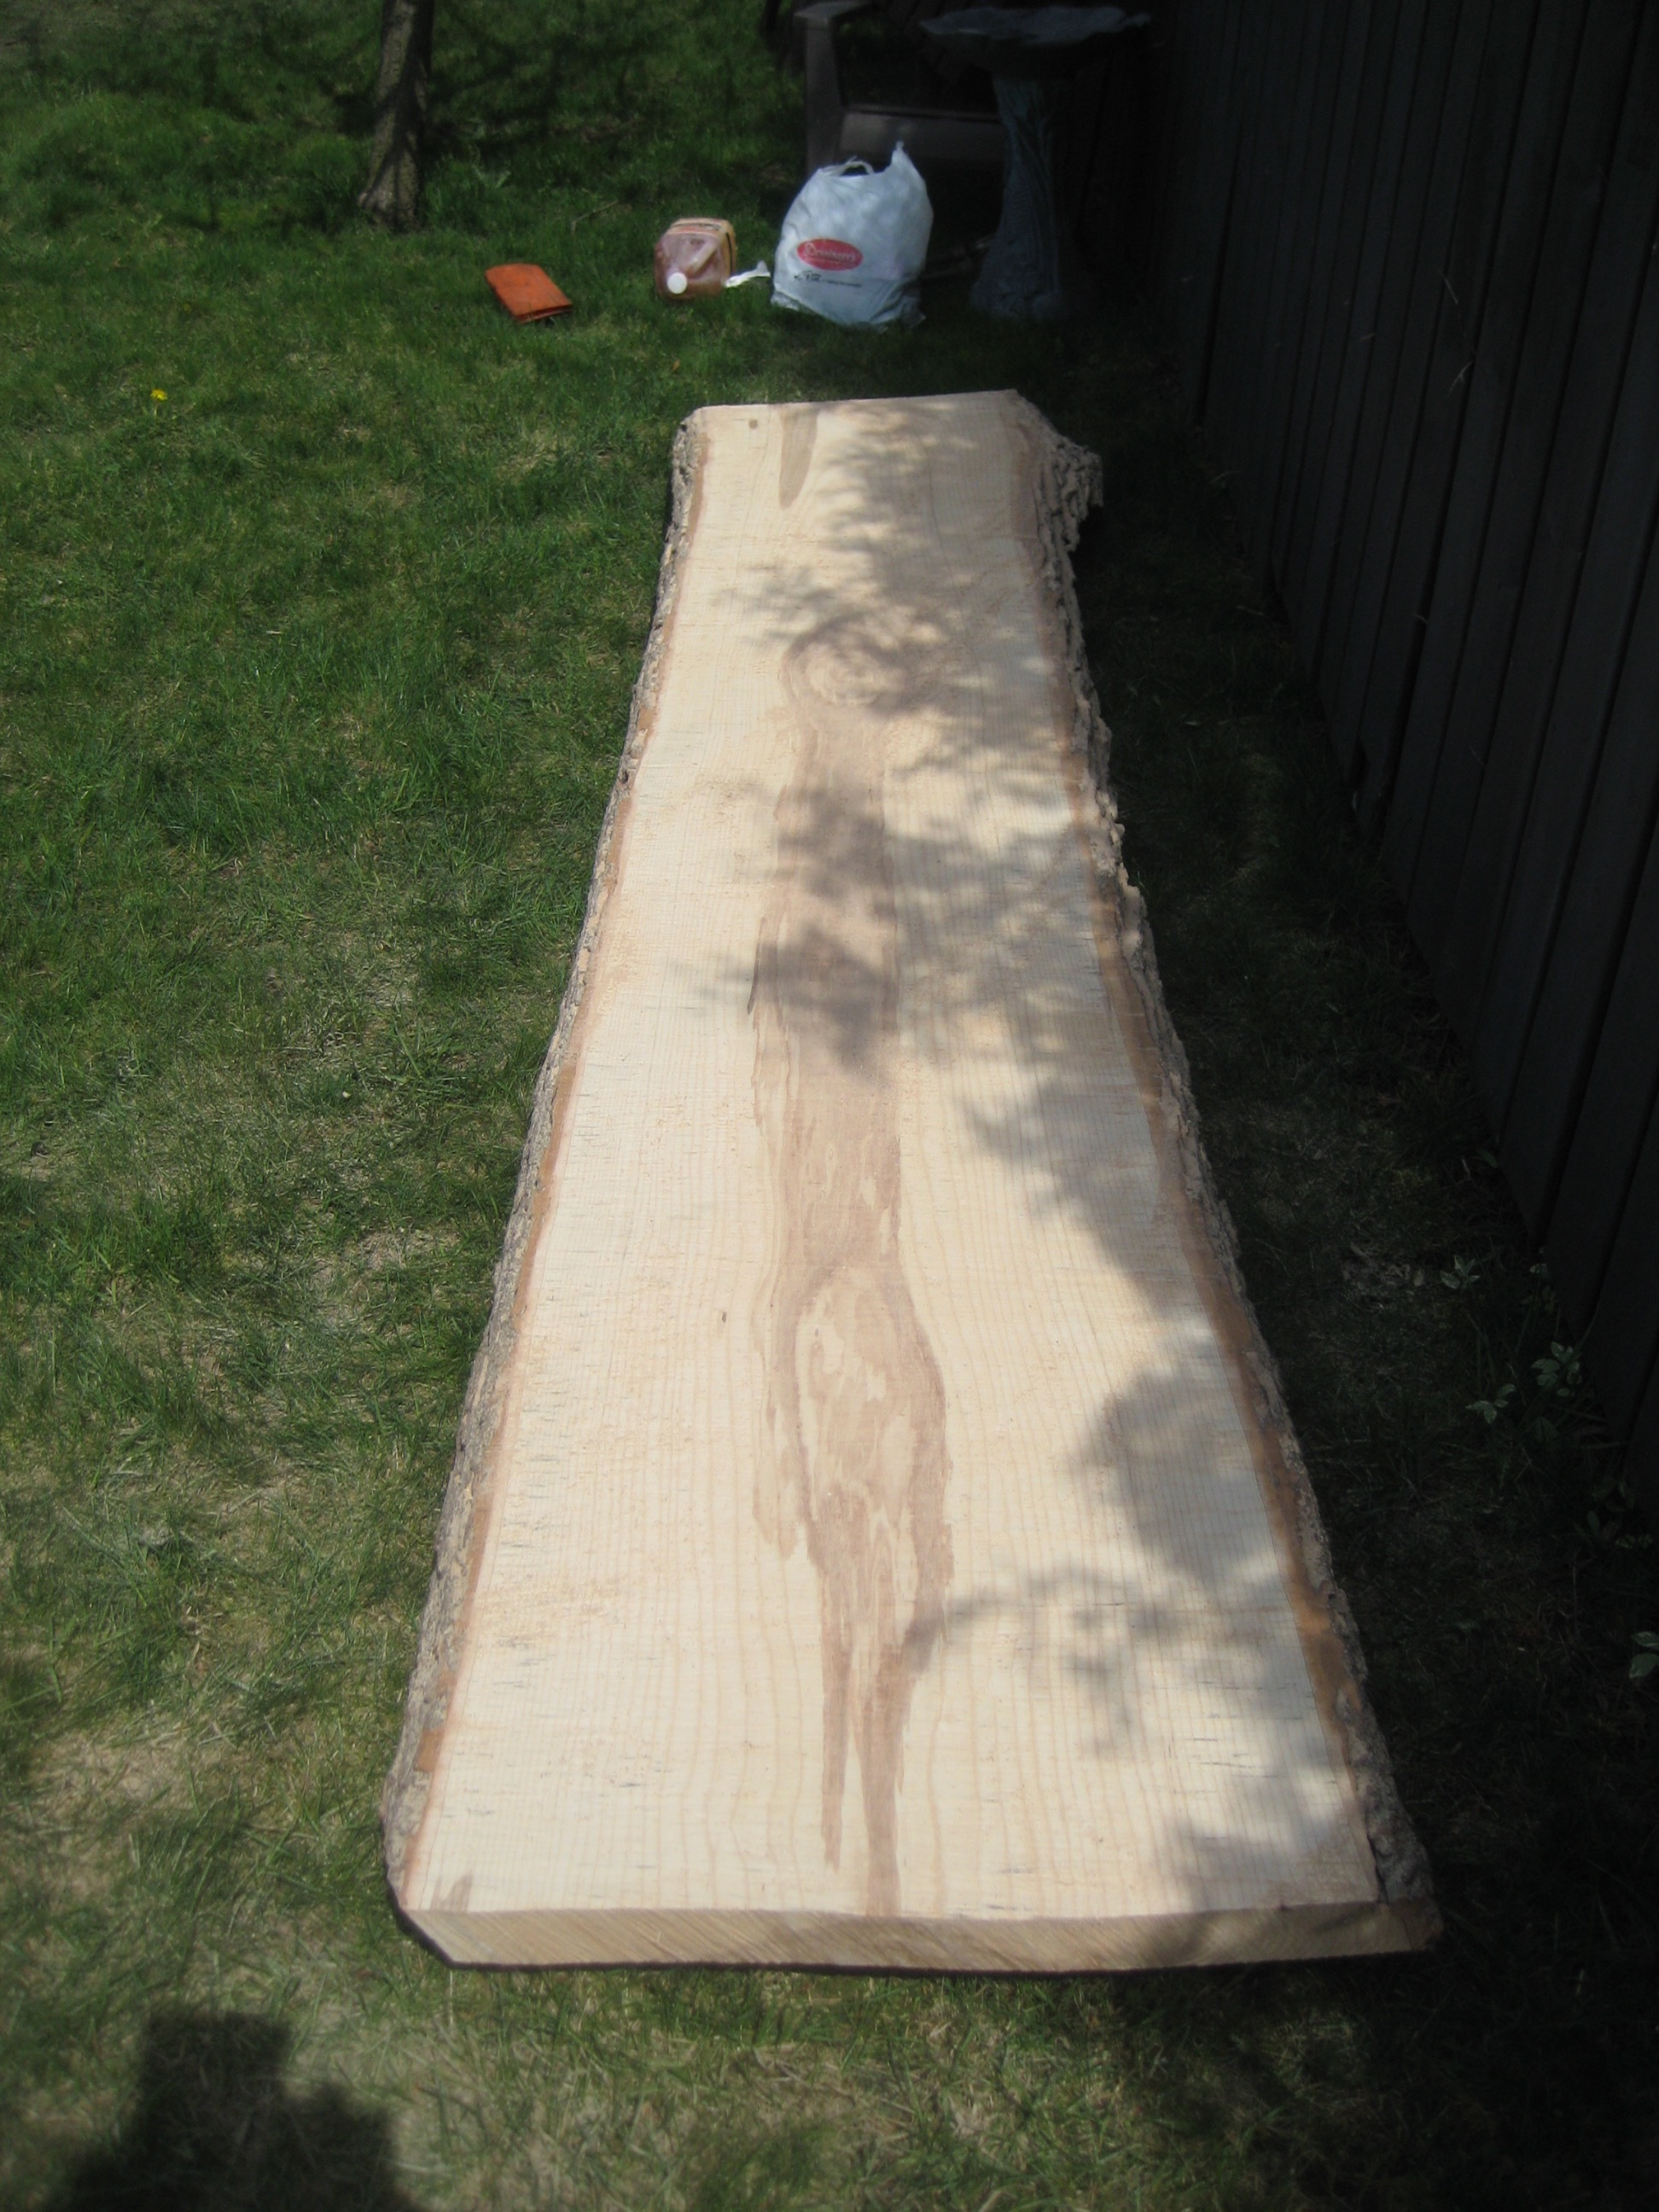 """Here is a 2"""" thick slab fresh off the tree :) You might be thinking """"ok so it was hard to cut, but now you have such a nice piece of wood ready to make into things!"""" but no. Next this slab has to dry. If it is left to dry naturally, it will take approximately 1 year/ inch to dry. So this 2"""" tree will take 2 years to dry.  You could also take the material to a kiln to have it dried rapidly, but that would make added cost for drying and transportation. Wu has a storage facility where he dries his planks naturally. He's been at it for over 10 years, so many of his slabs are ready to work with."""